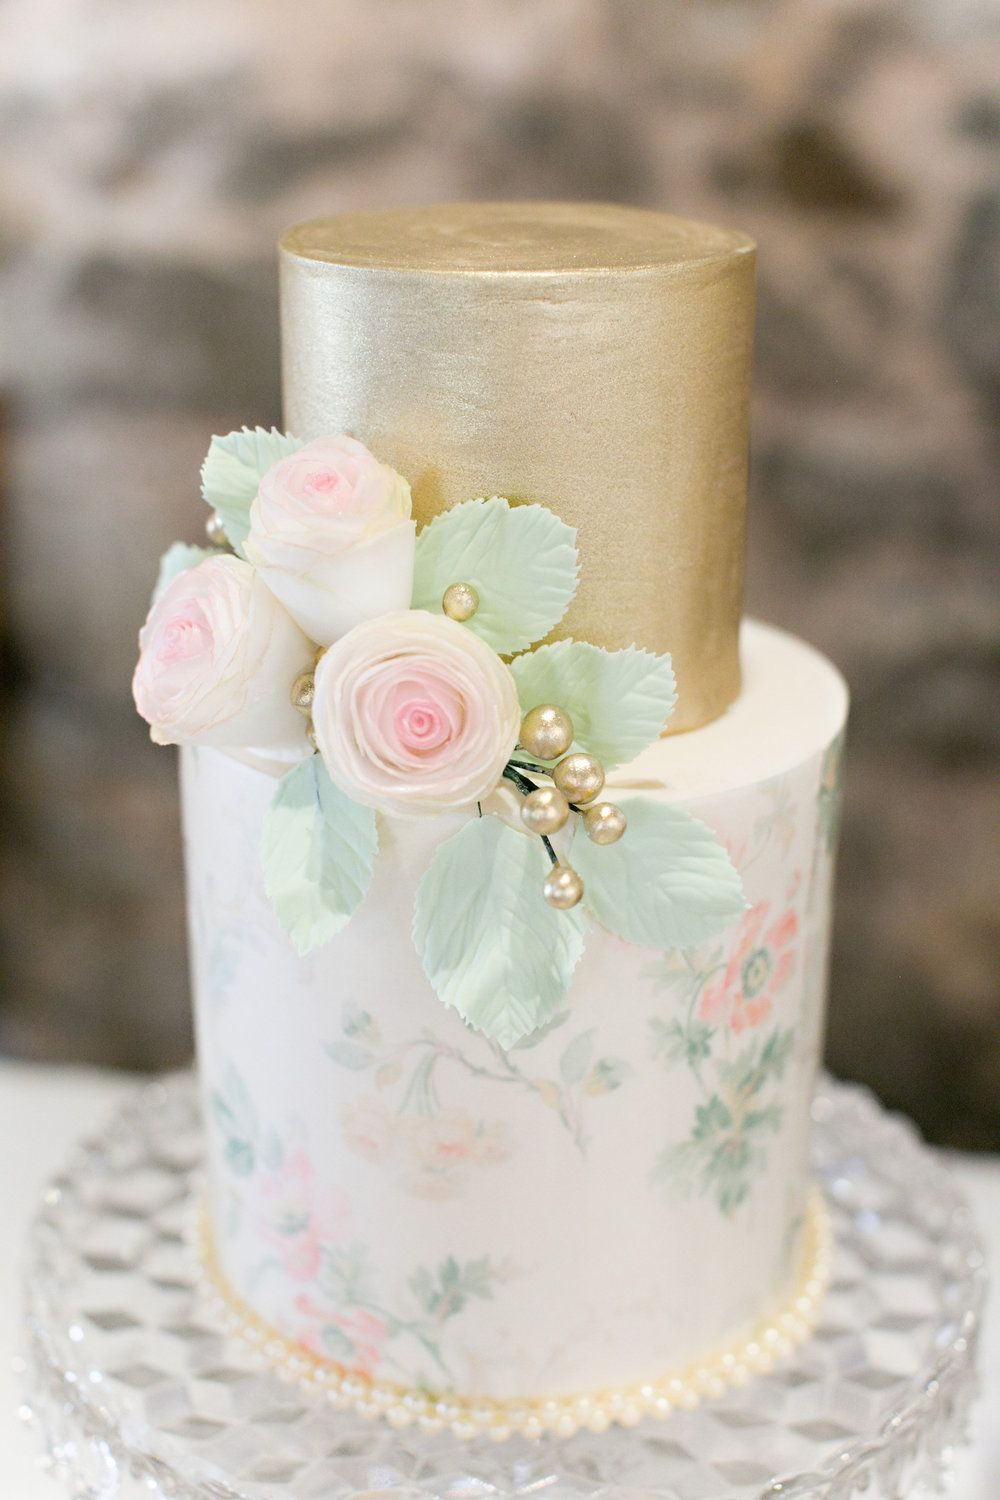 Wafer Paper Flower Wedding Cake Deweddingjpg